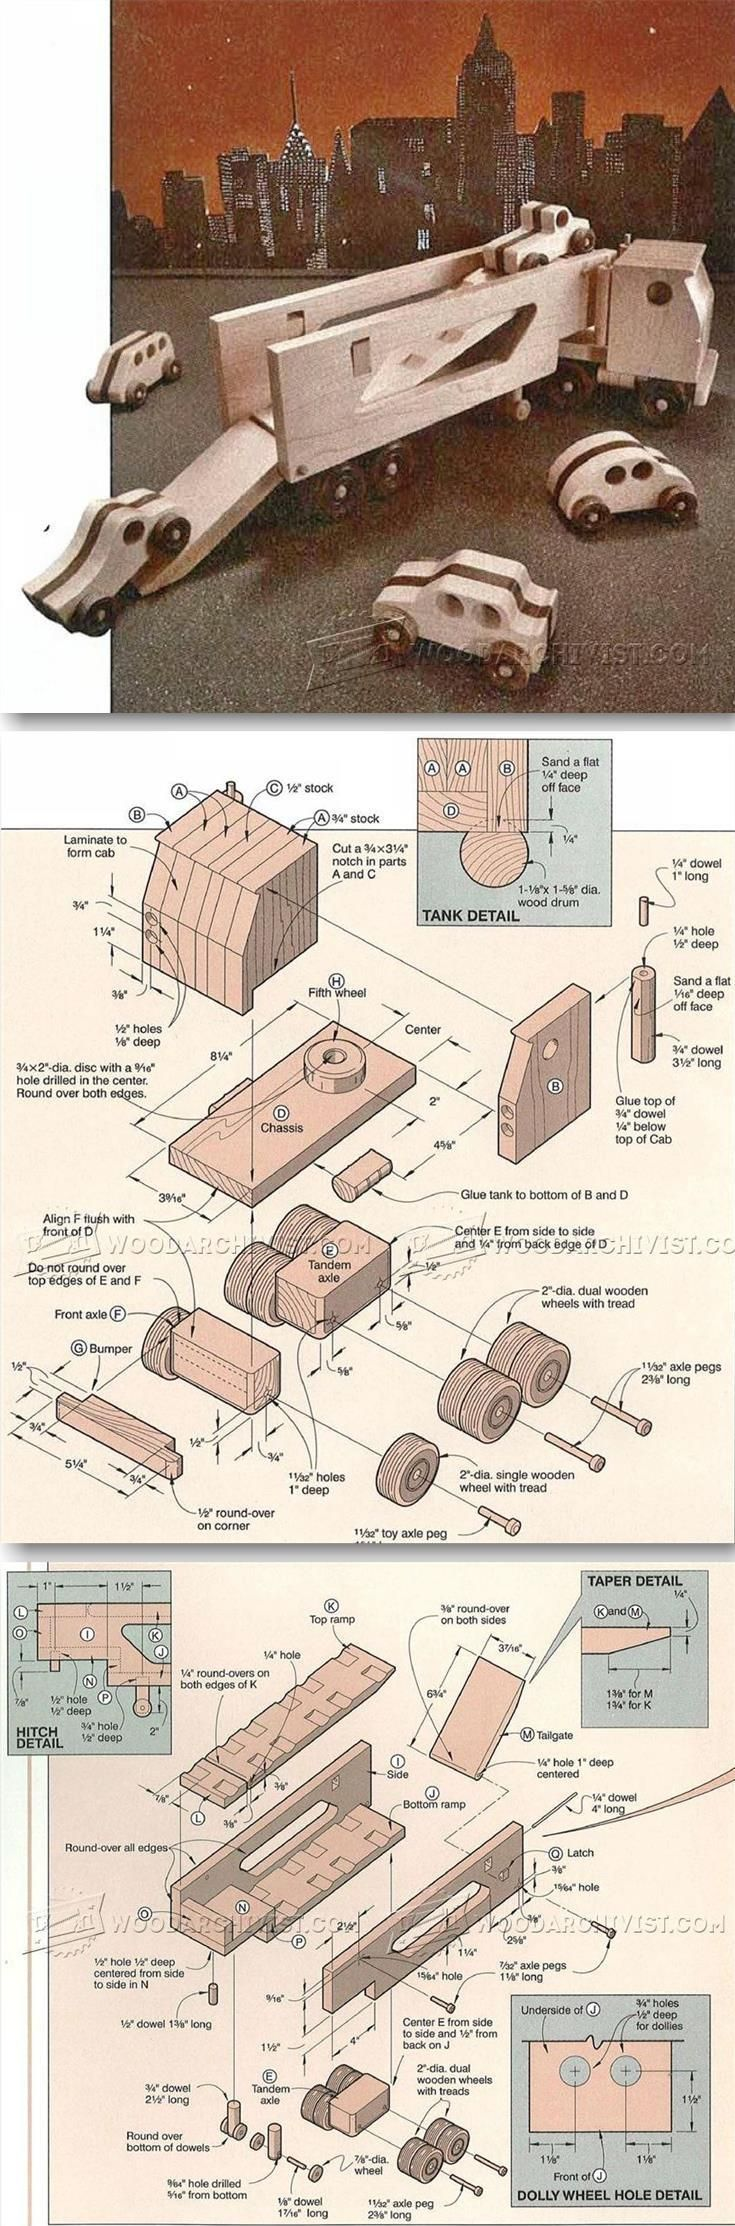 Wooden Toy Auto Transport - Children's Wooden Toy Plans and Projects   WoodArchivist.com